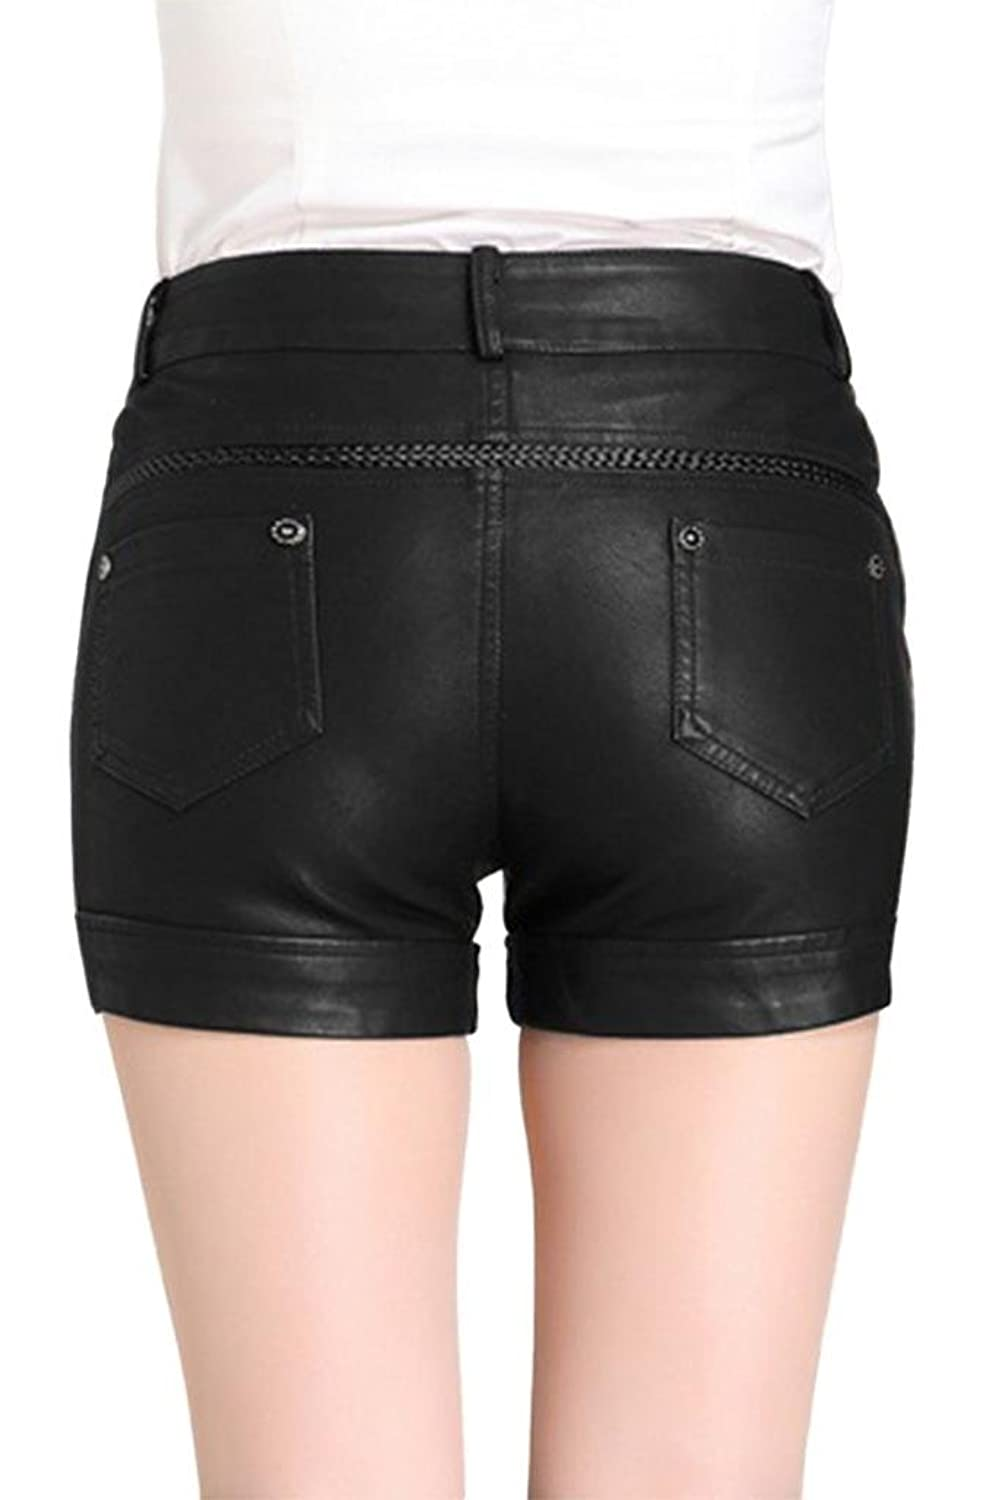 Lotus Instyle Faux Leather Shorts PVC Short Pants with Pockets-Black L:  Amazon.co.uk: Clothing